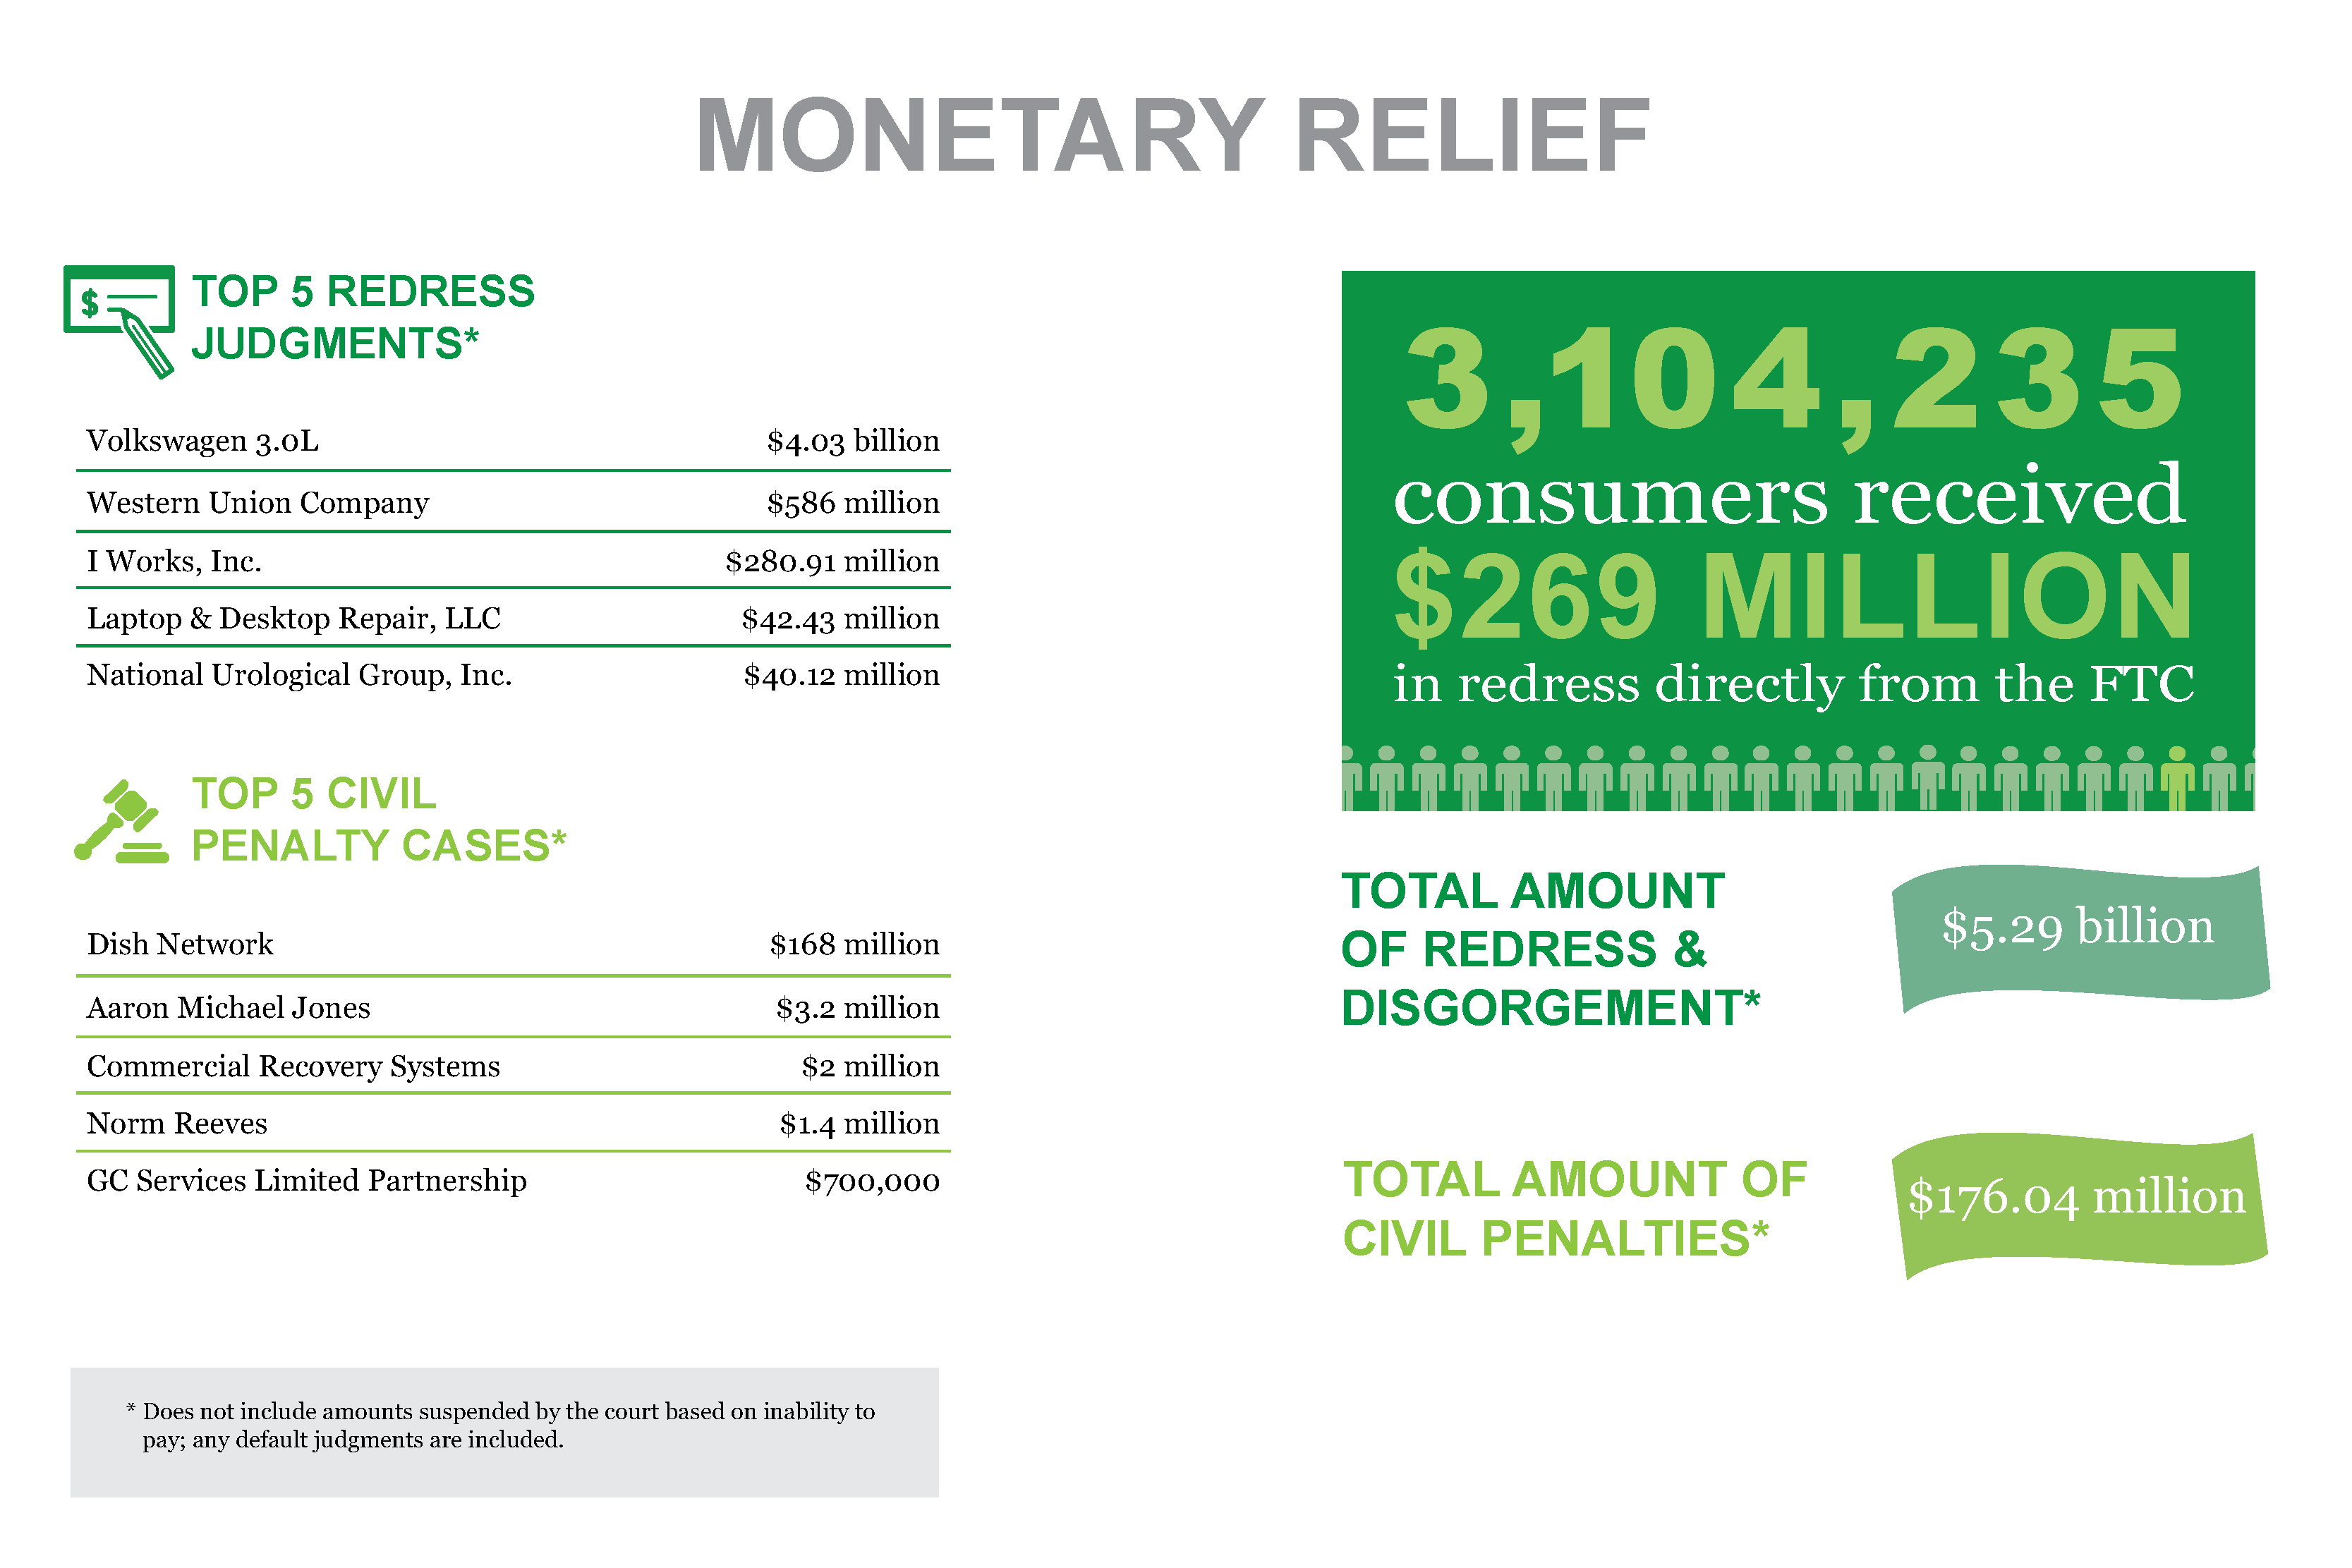 Stats & Data 2017 Monetary Relief infographic